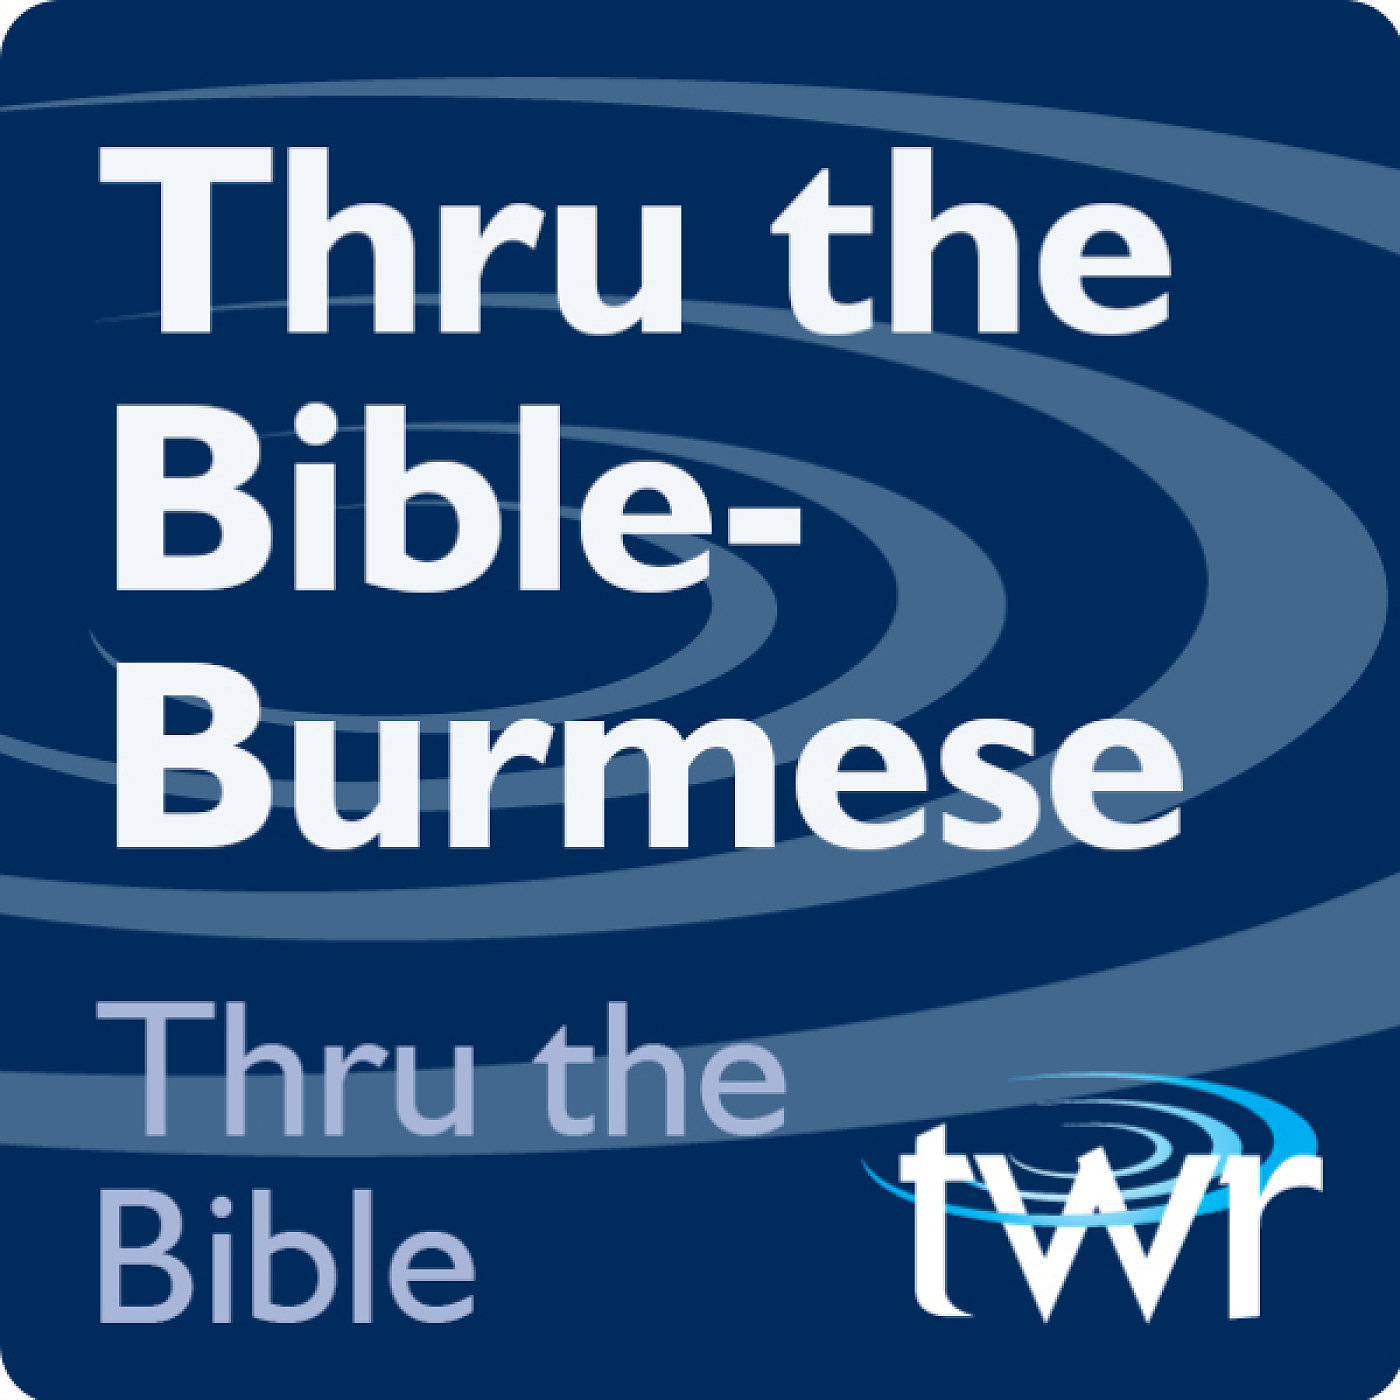 Thru the Bible @ ttb.twr.org/burmese